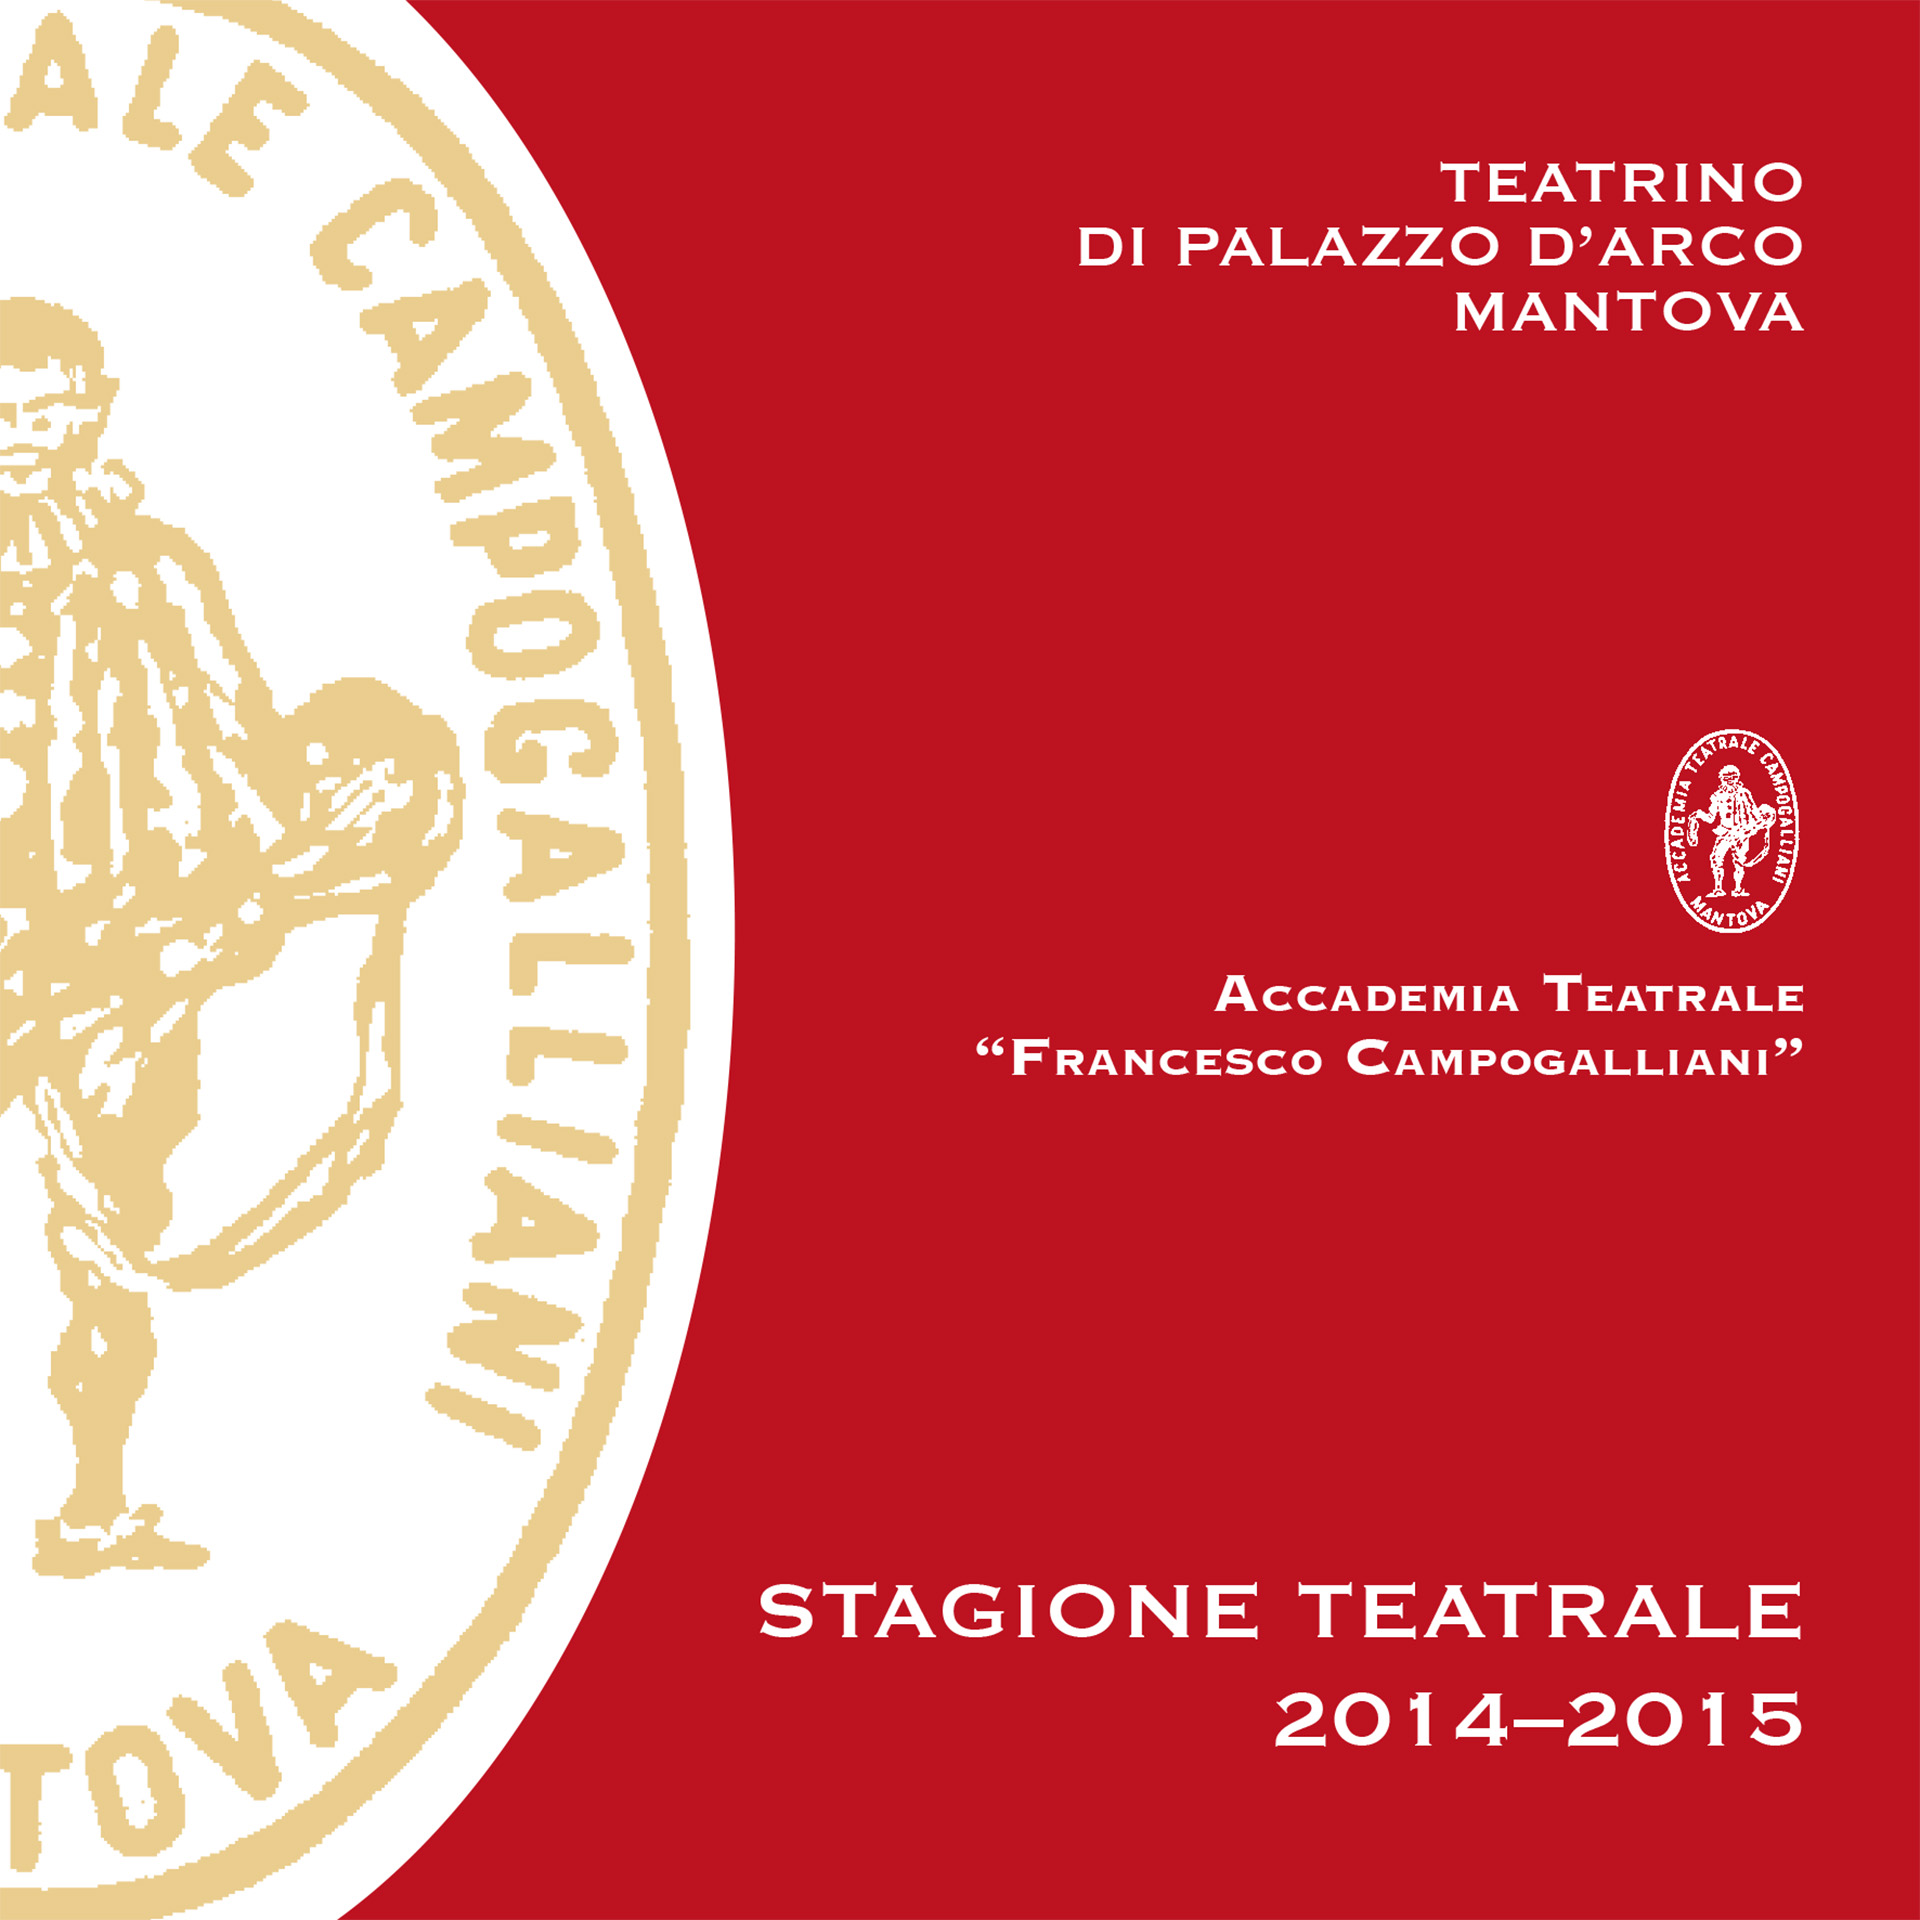 STAGIONE TEATRALE 2014 - 2015